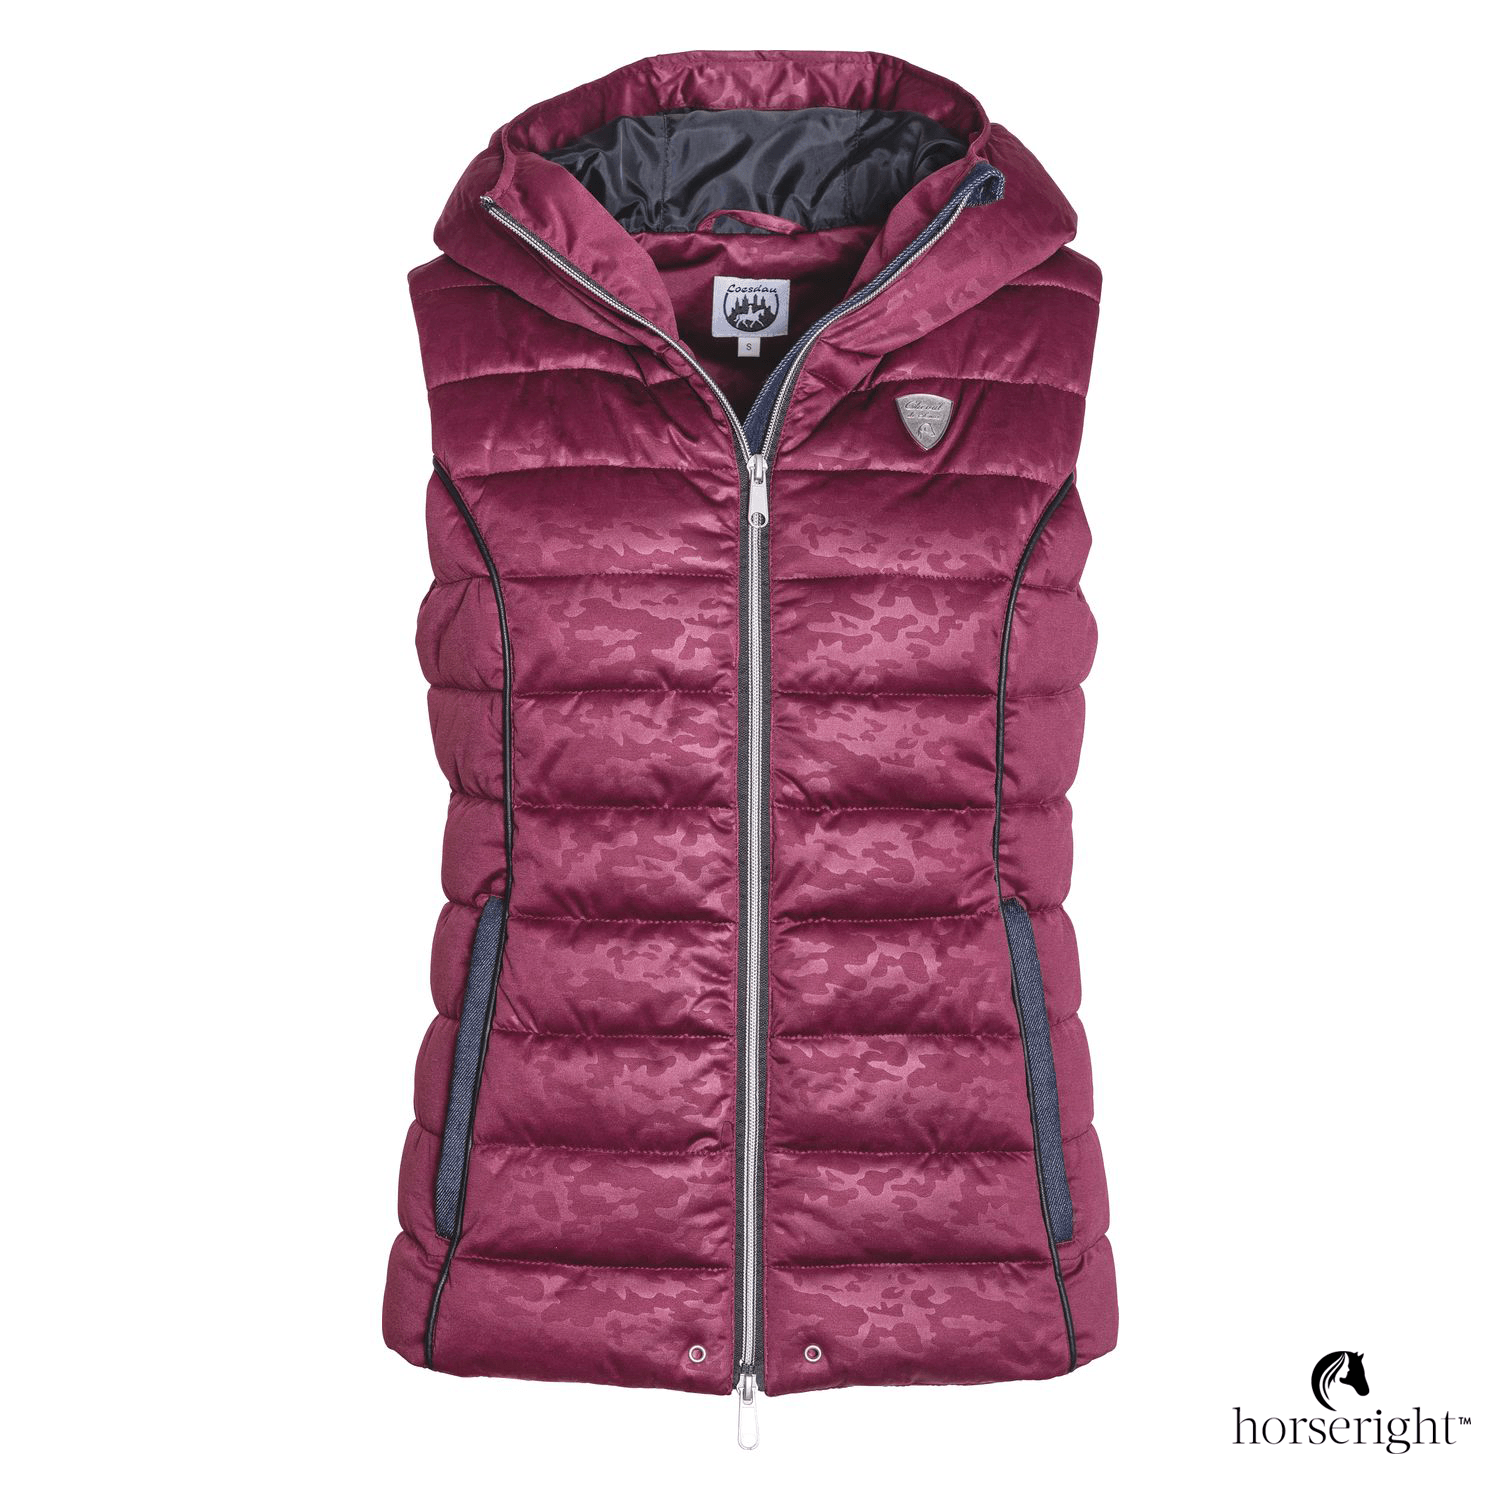 Cheval De Luxe Tyra Riding And Leisure Vest